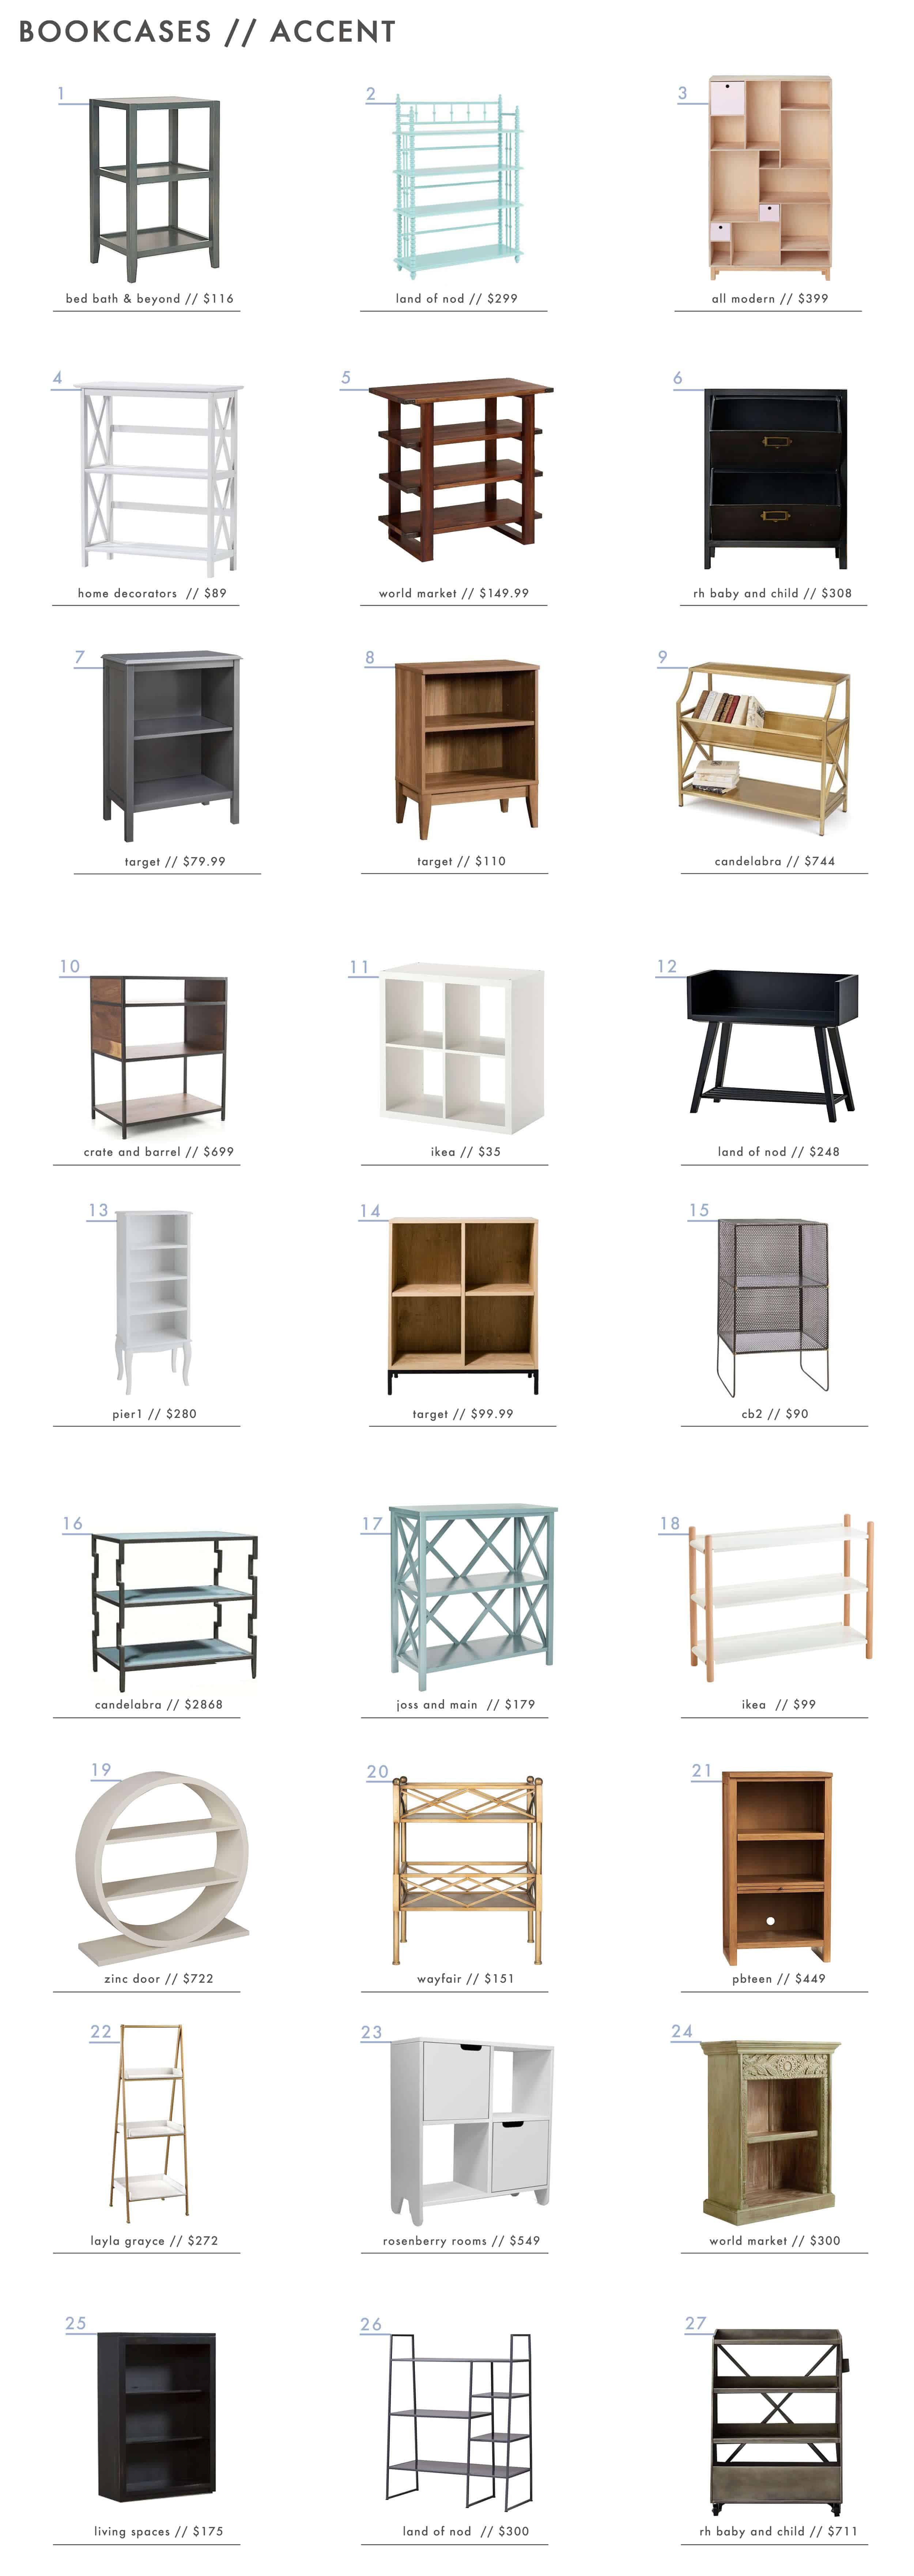 Emily Henderson_Bookcases_Shelving_Organization_Accent_Roundup